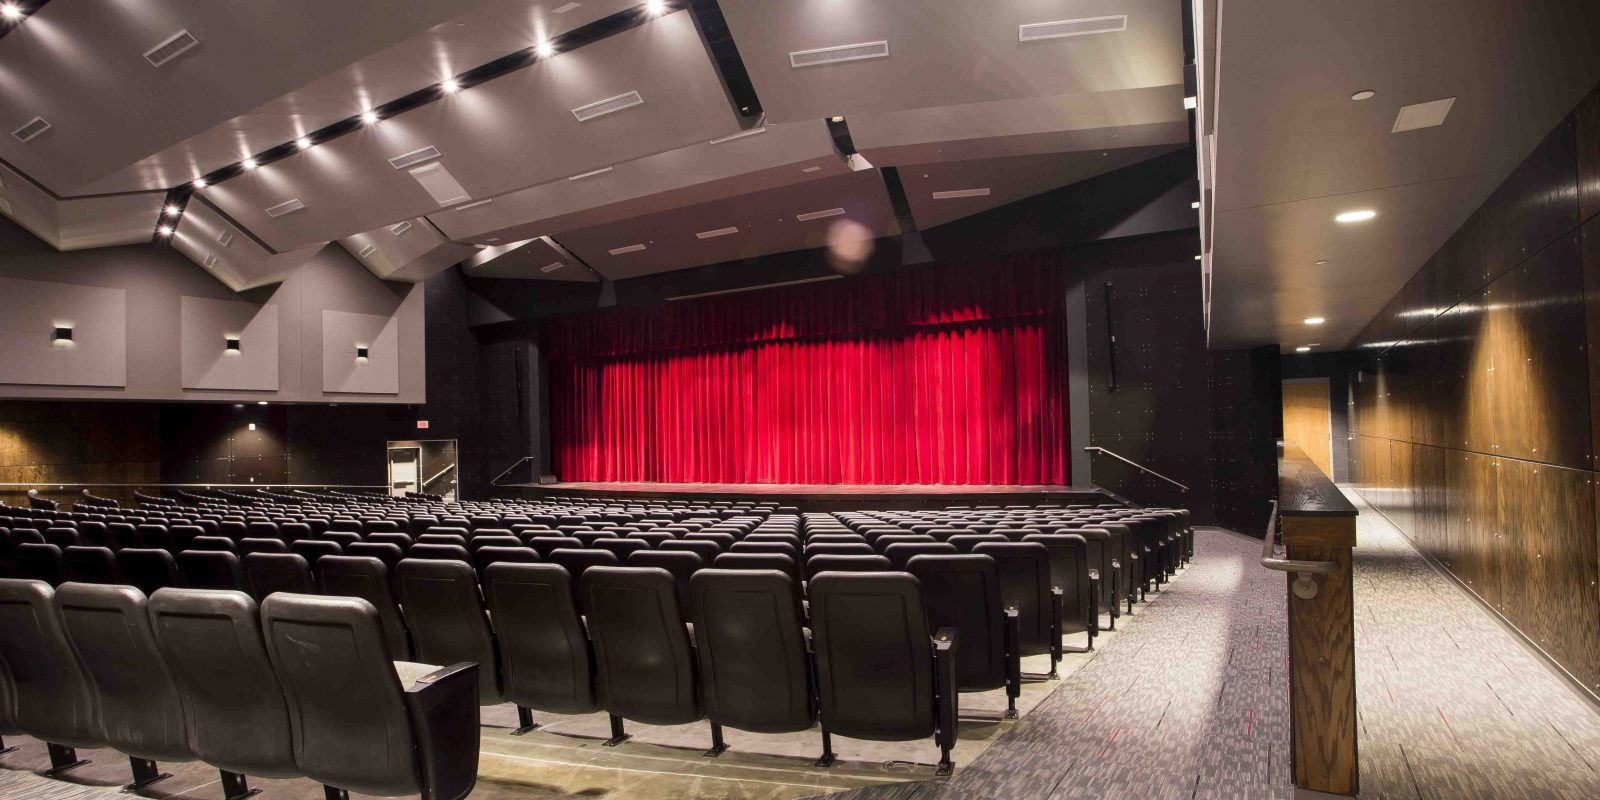 Farmington Performing Arts